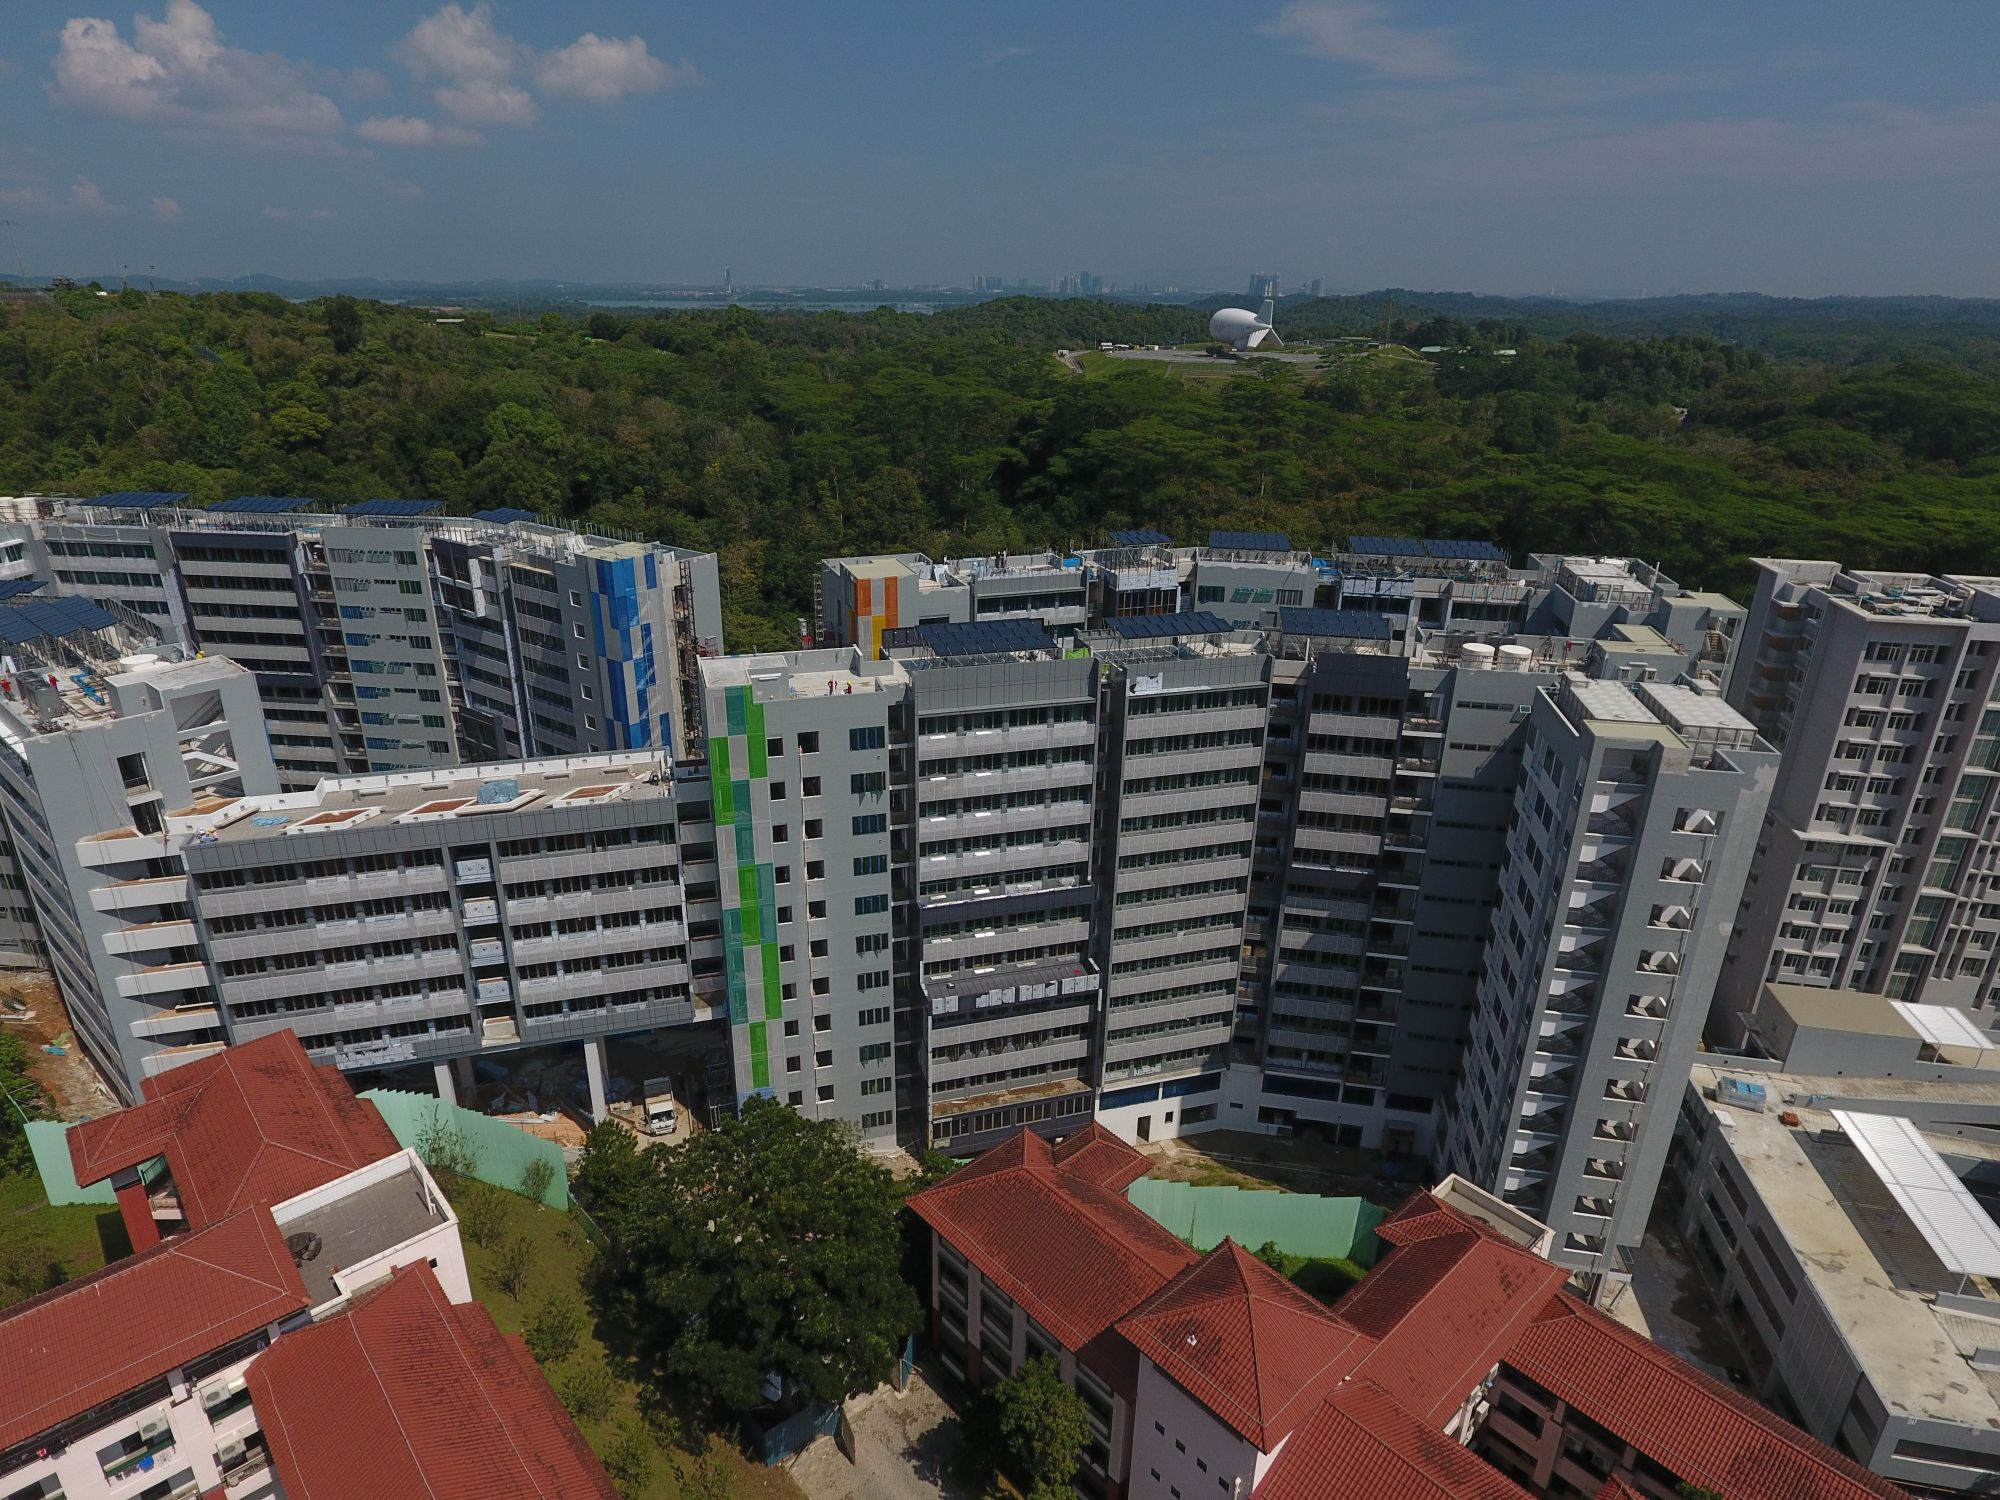 NTU Residential Hall